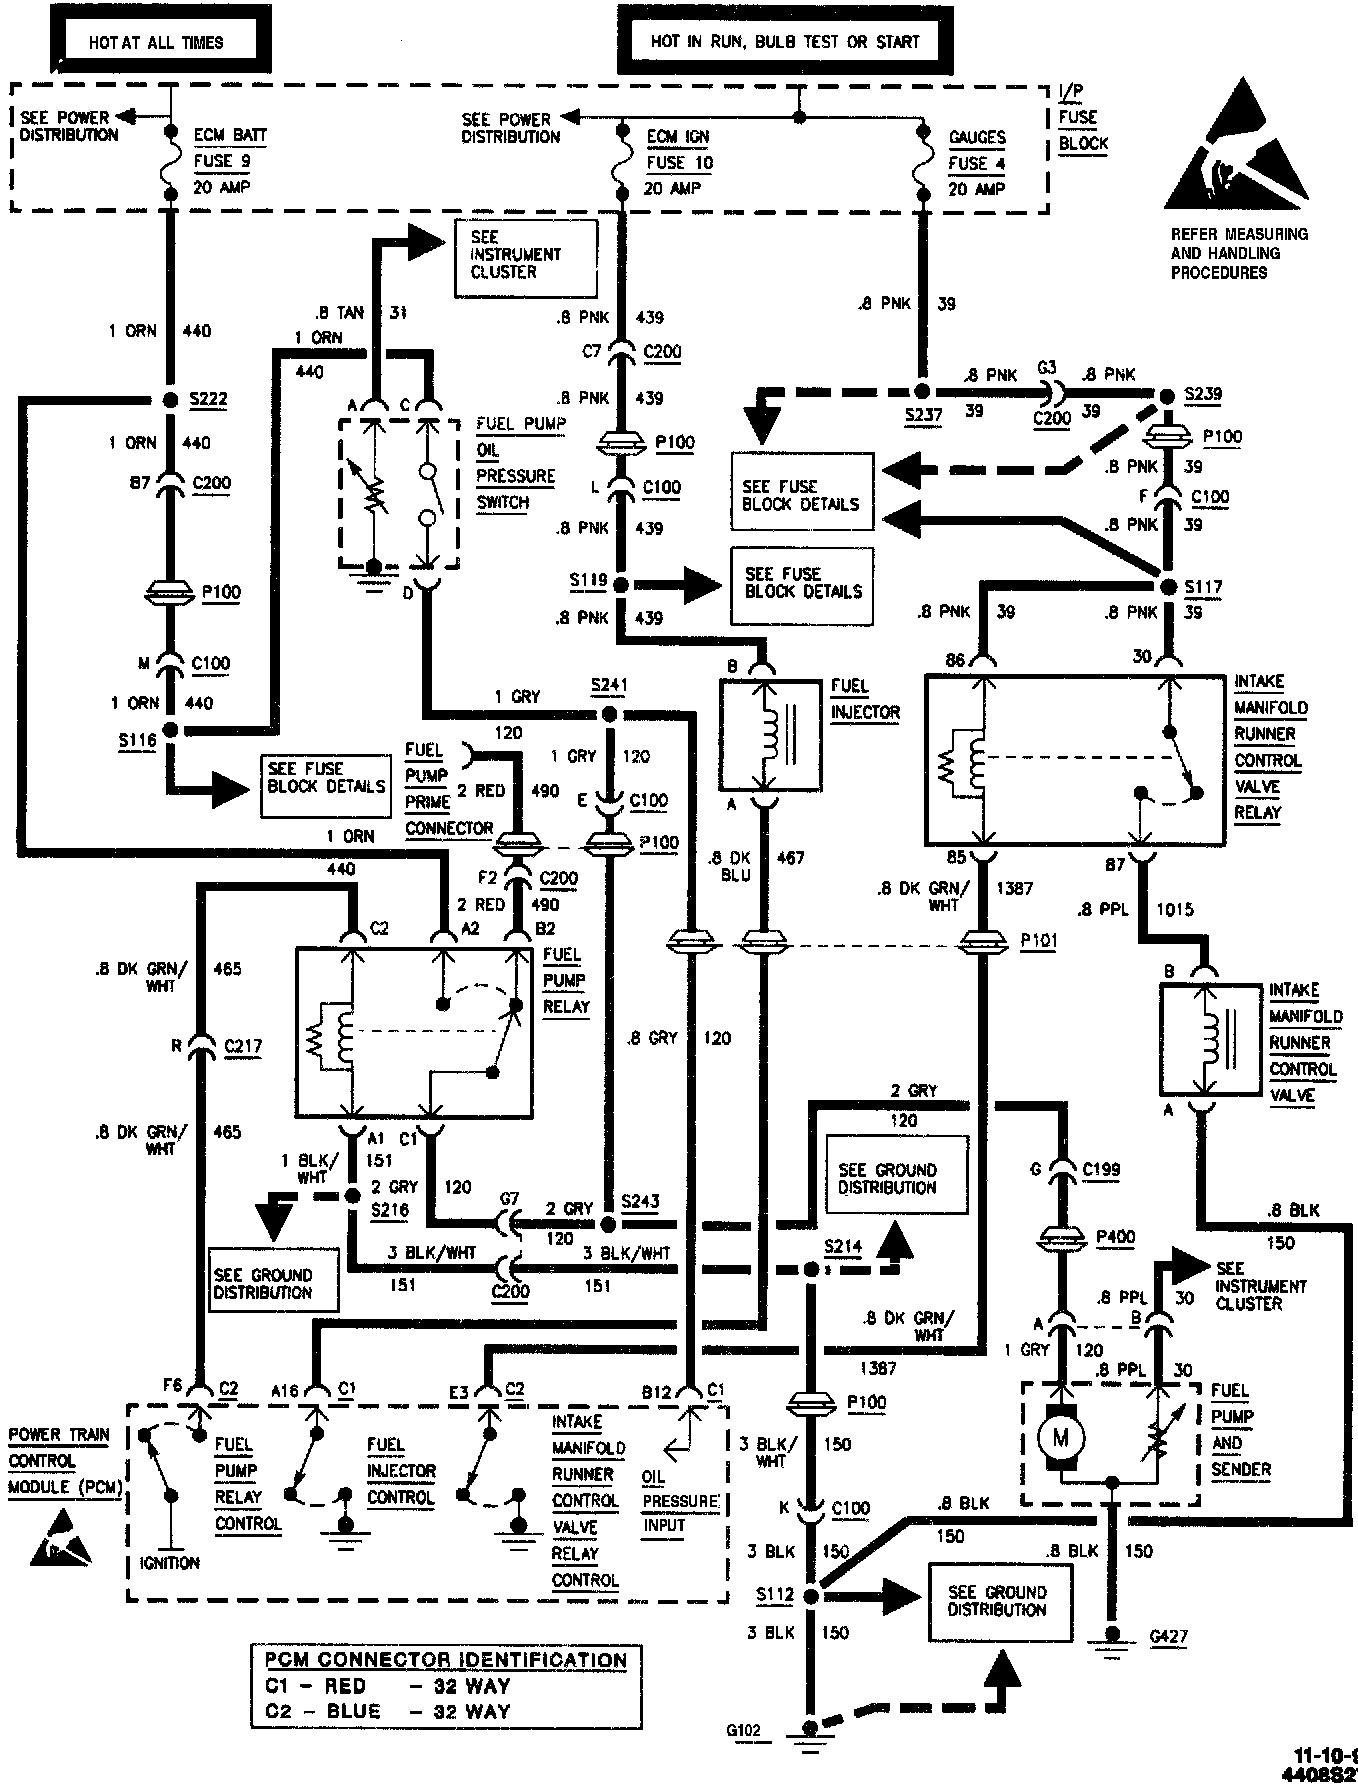 [DIAGRAM_38ZD]  7DA7FB 1992 S10 Lighting Wiring Diagram | Wiring Library | 1992 S10 Pickup Truck Wiring Diagram |  | Wiring Library